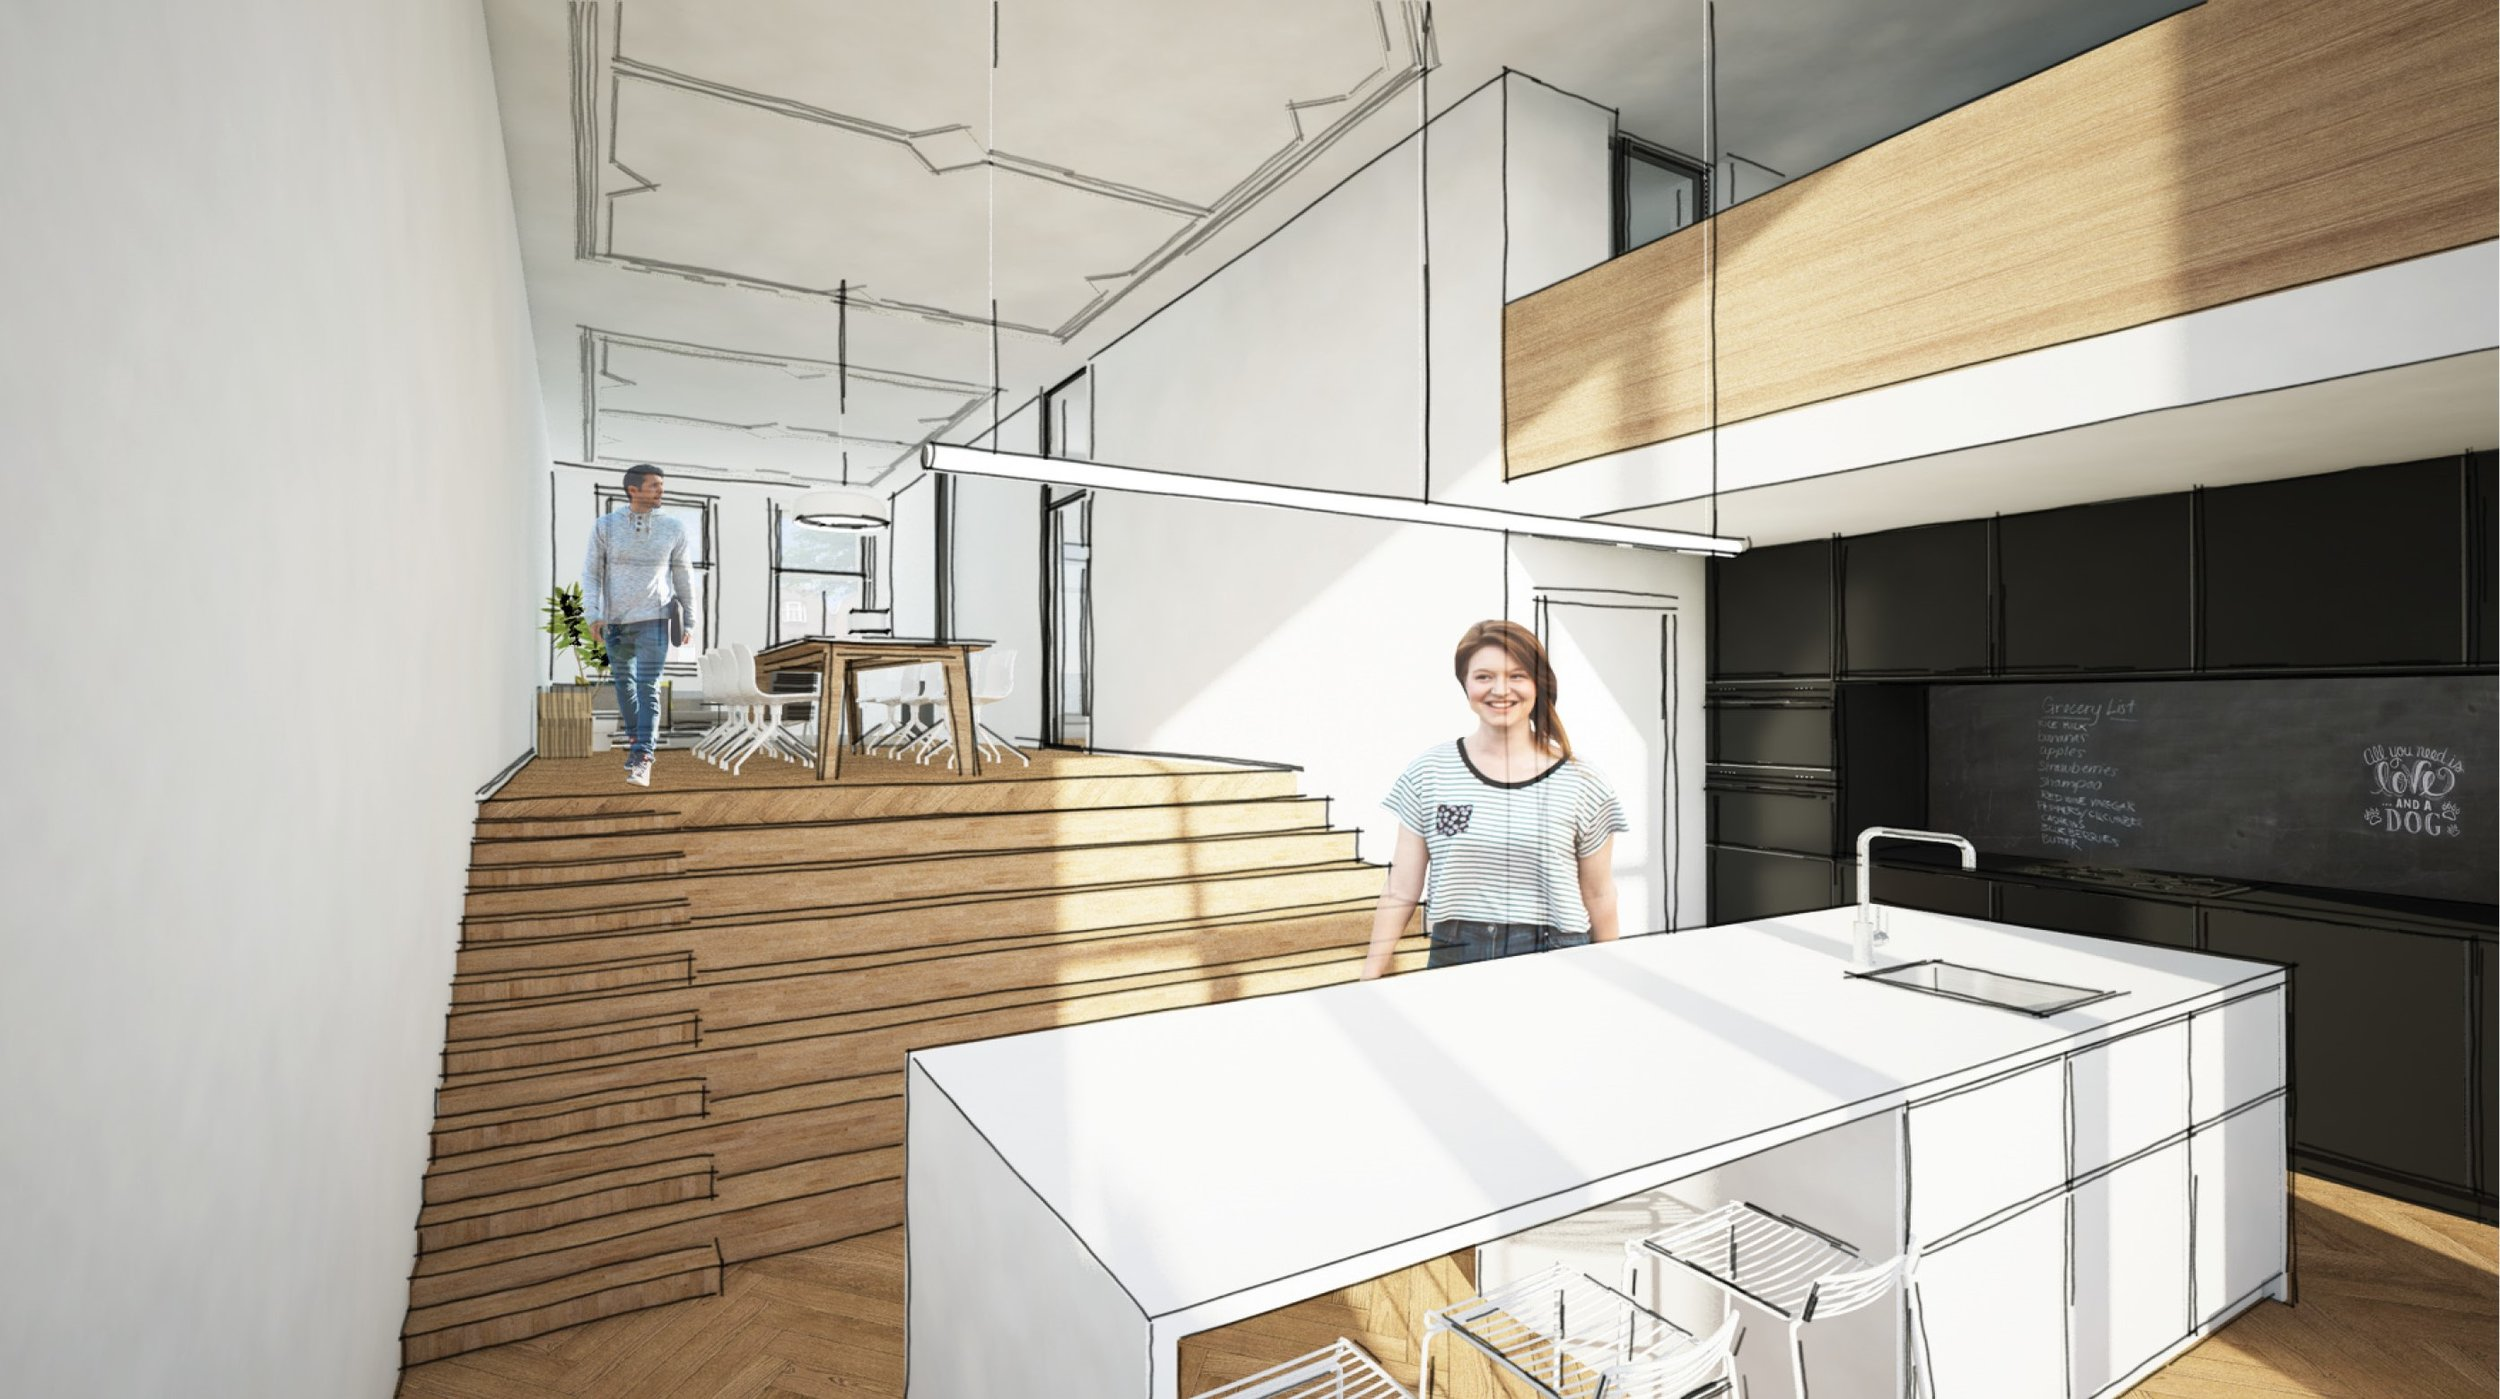 the stairs connects the living room and the kitchen with each other